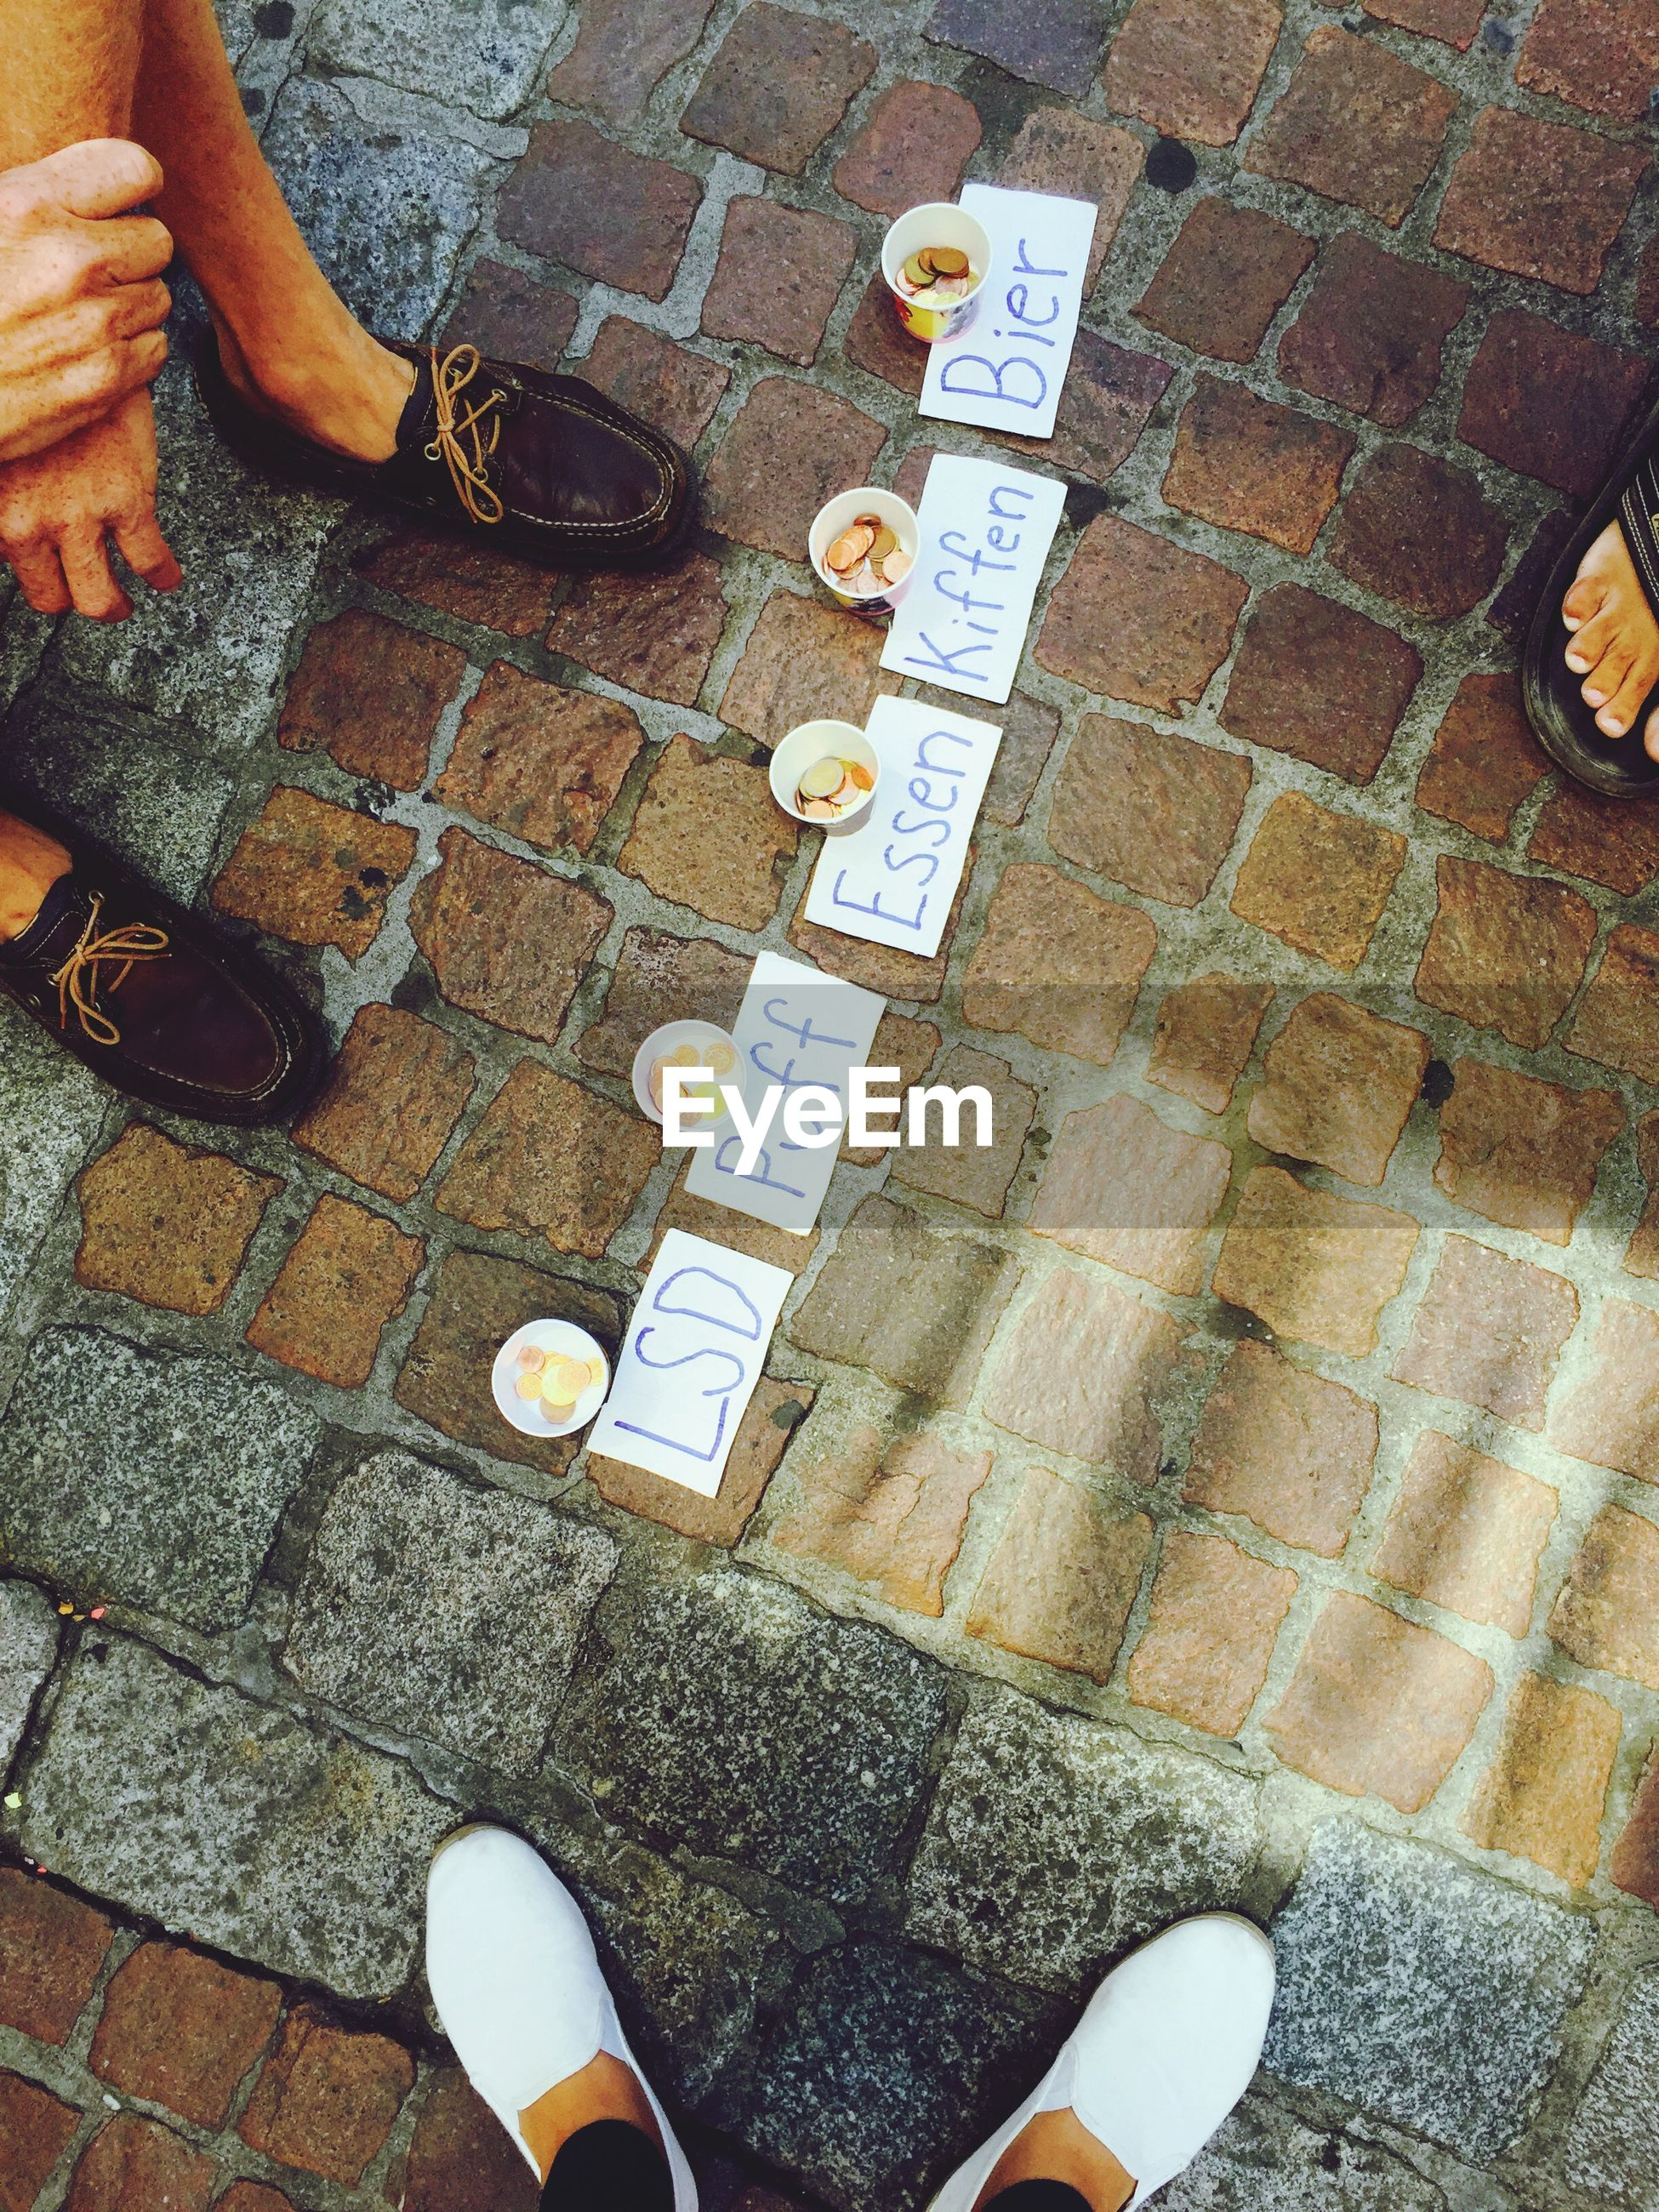 Cropped image of friends standing by candies on sidewalk with text